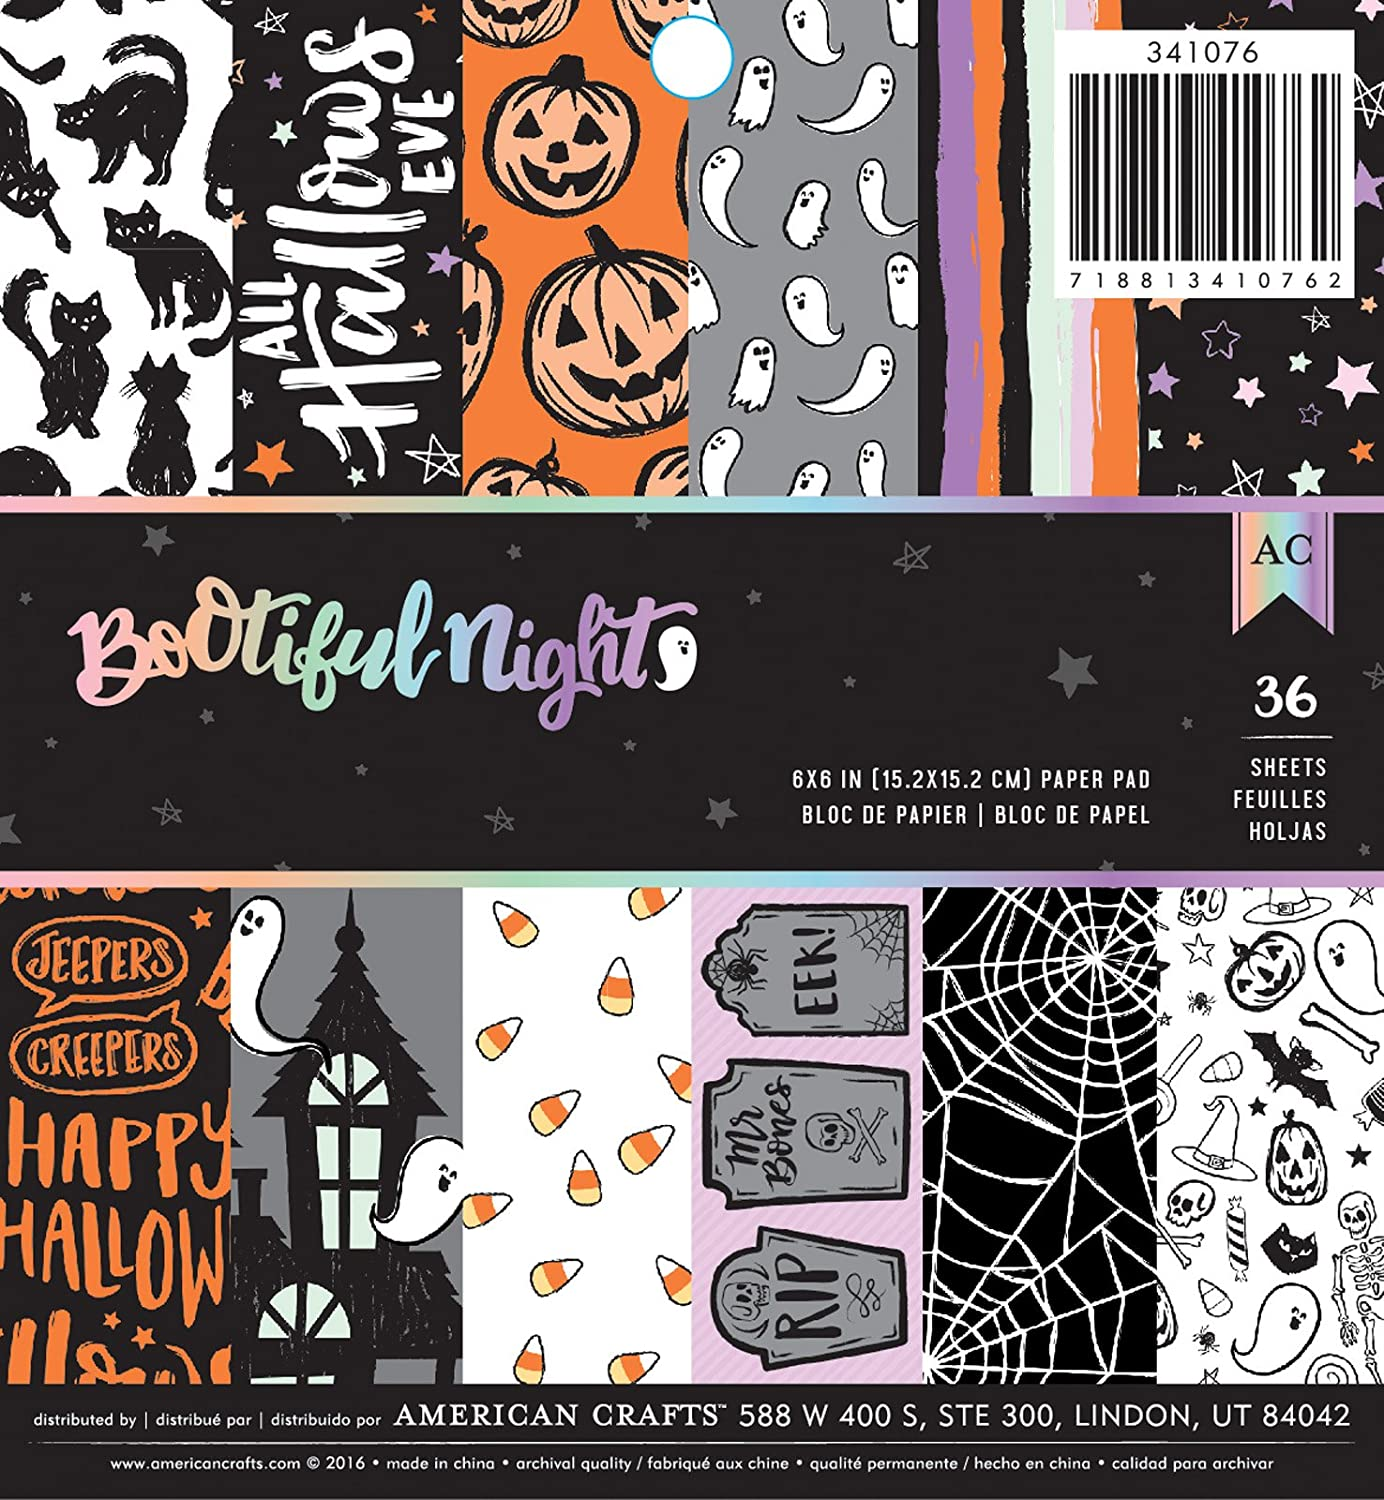 American Crafts BOOtiful Night 6 x 6 Inch 36 Sheet Paper Pad Halloween